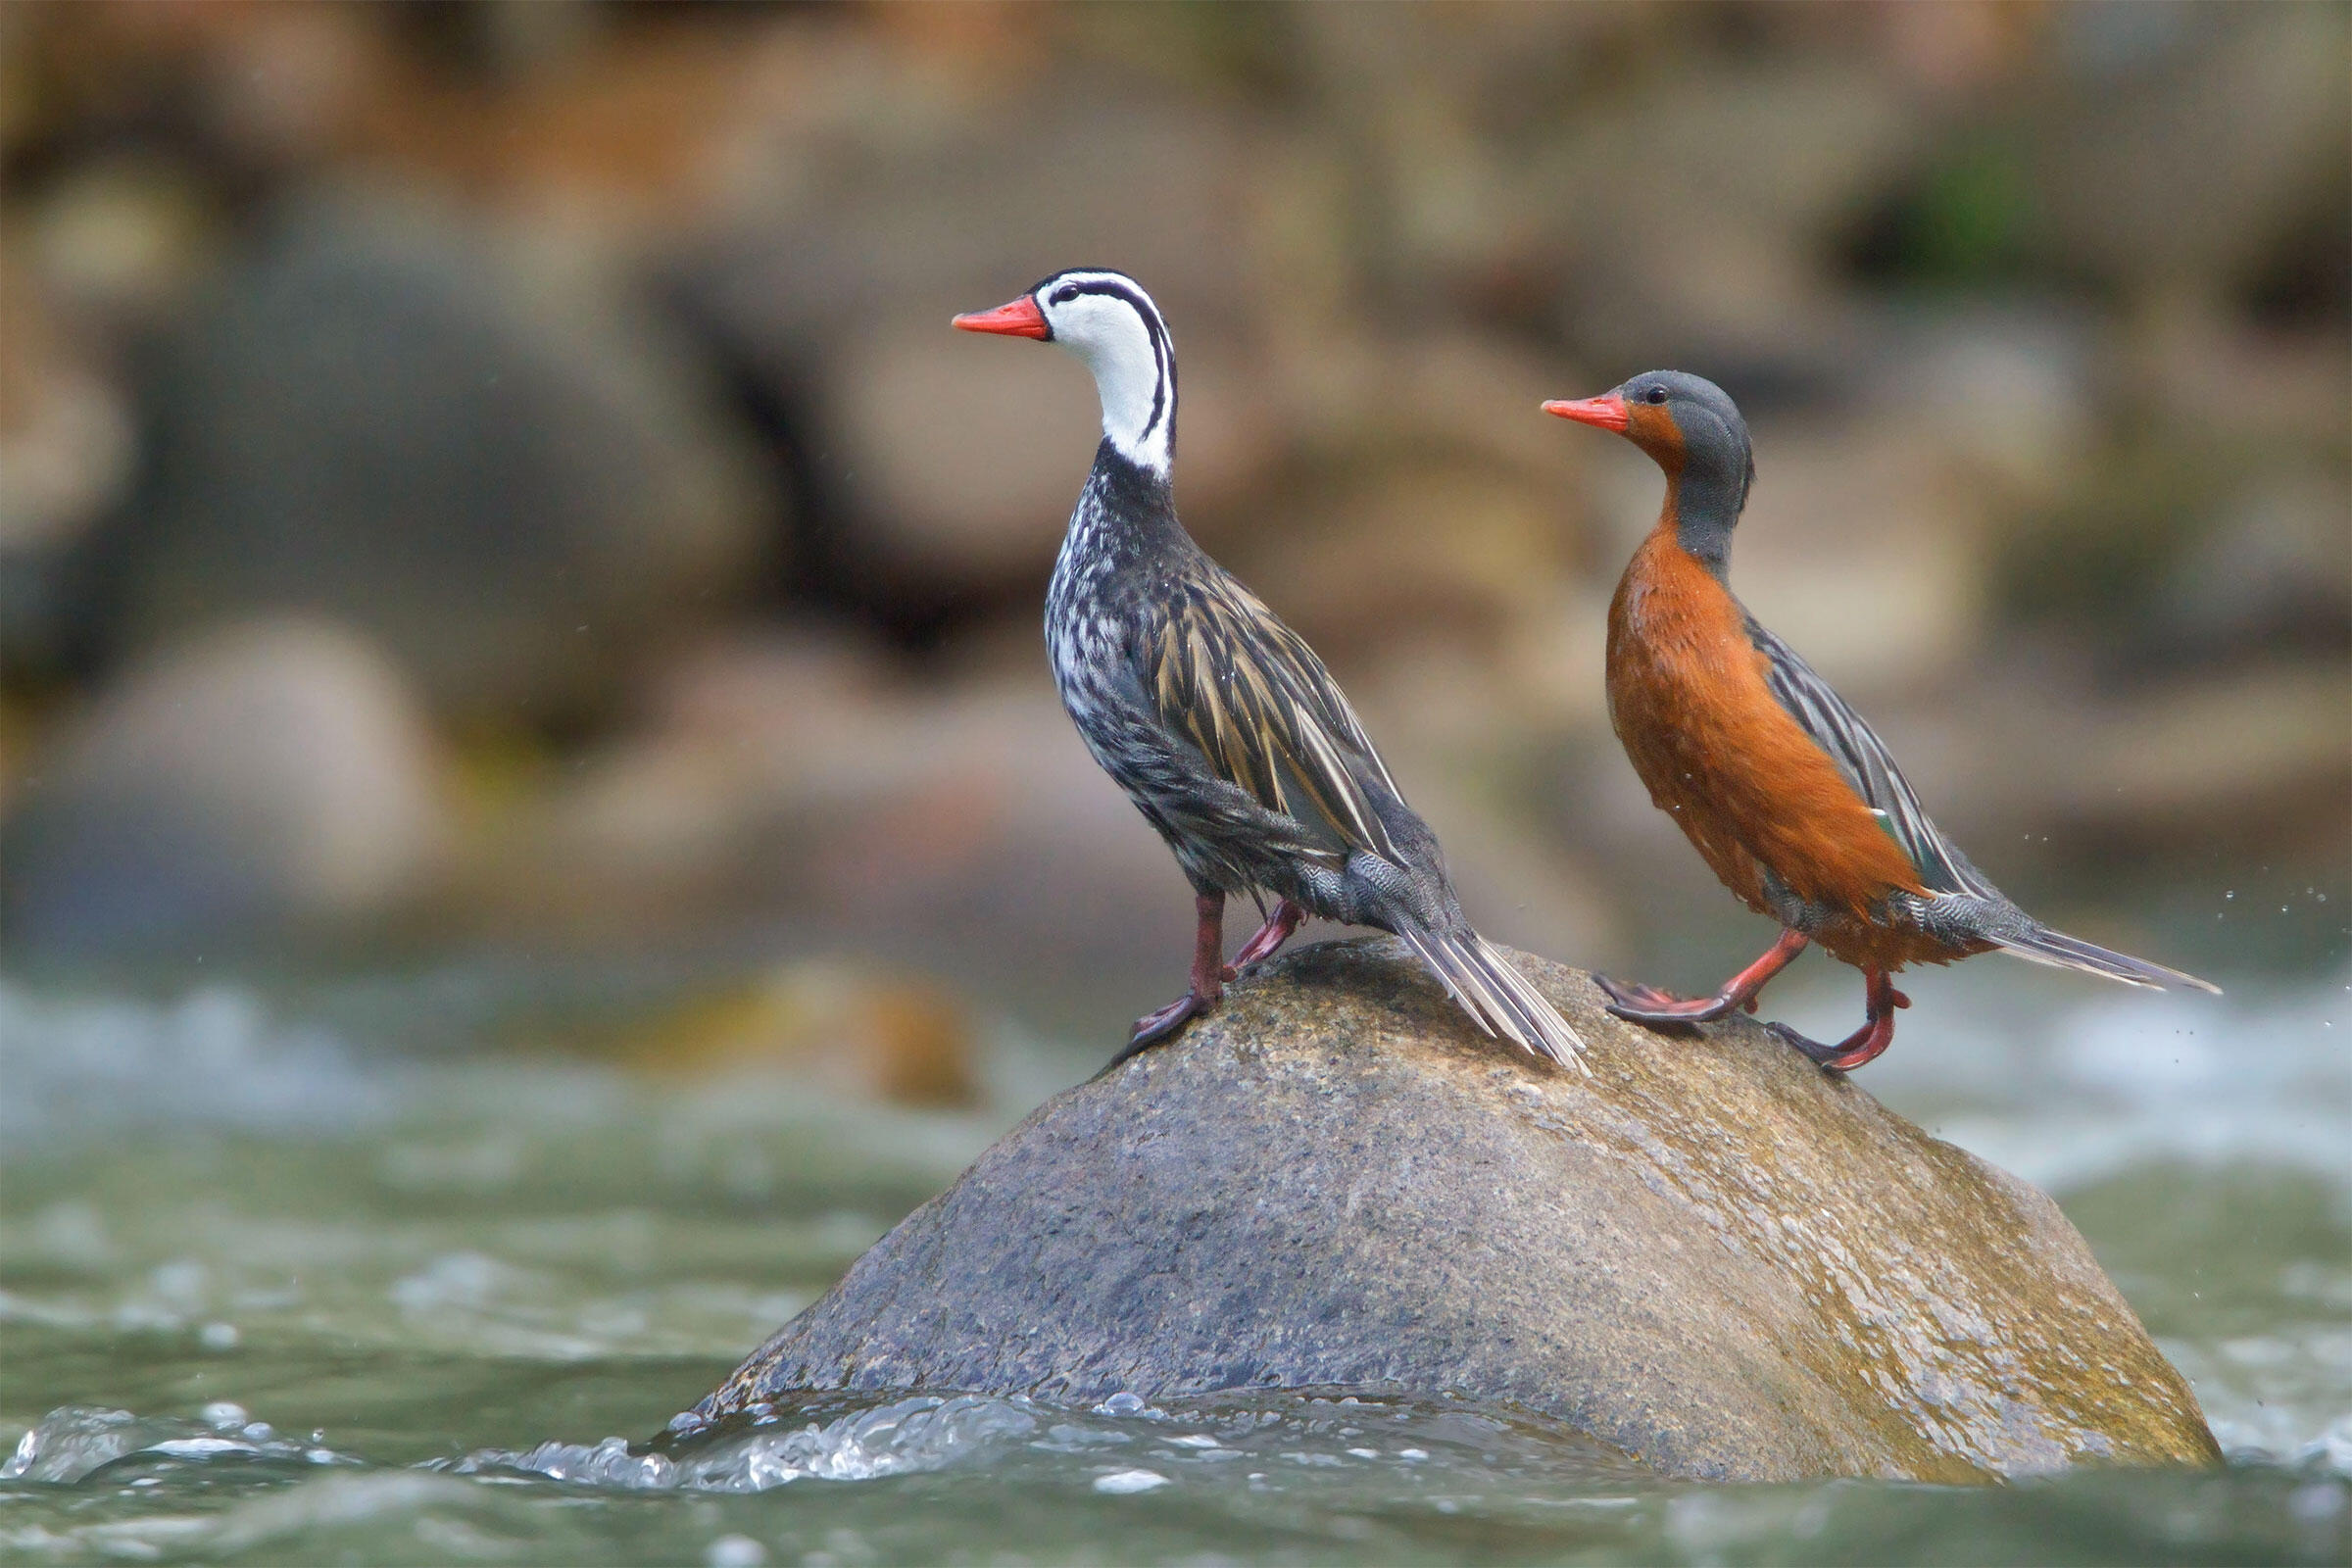 Male (left) and female (right). All Canada Photos/Alamy